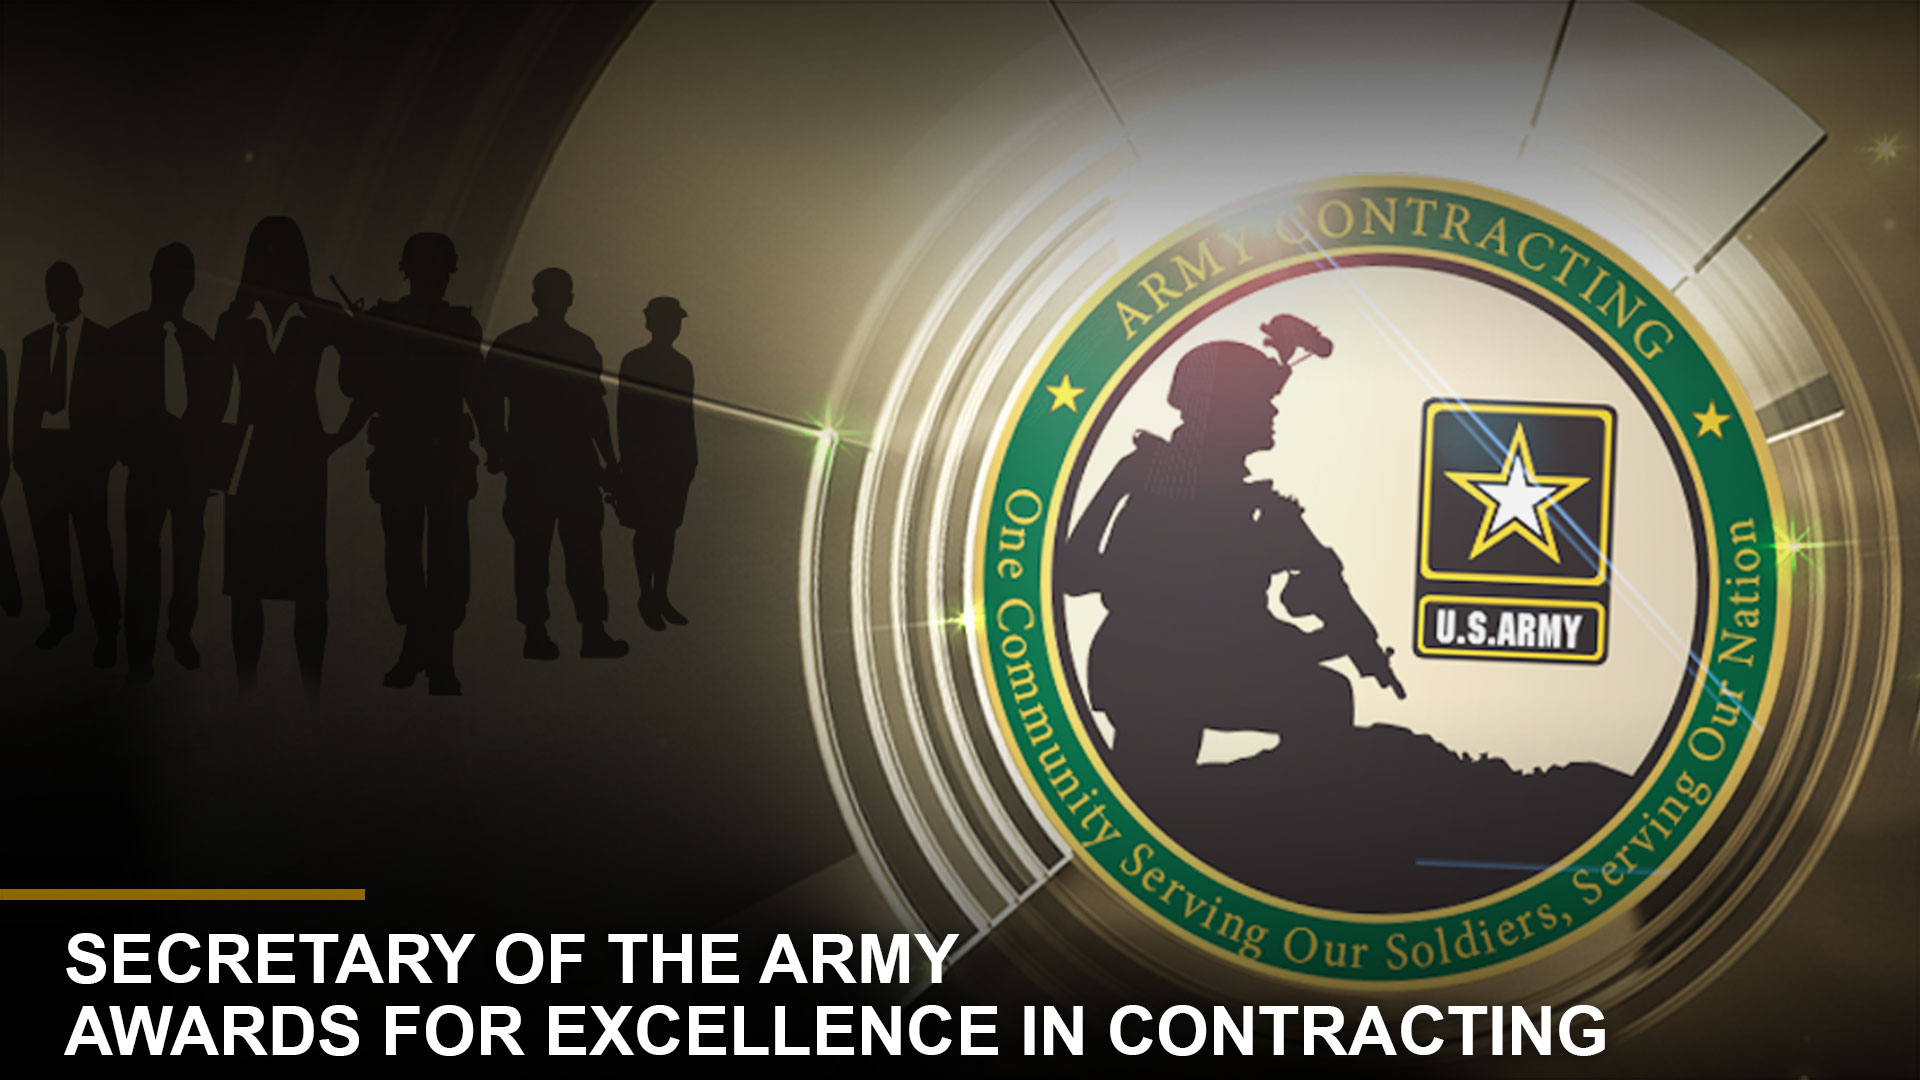 Secretary of the Army Awards for Excellence in Contracting Special Awards